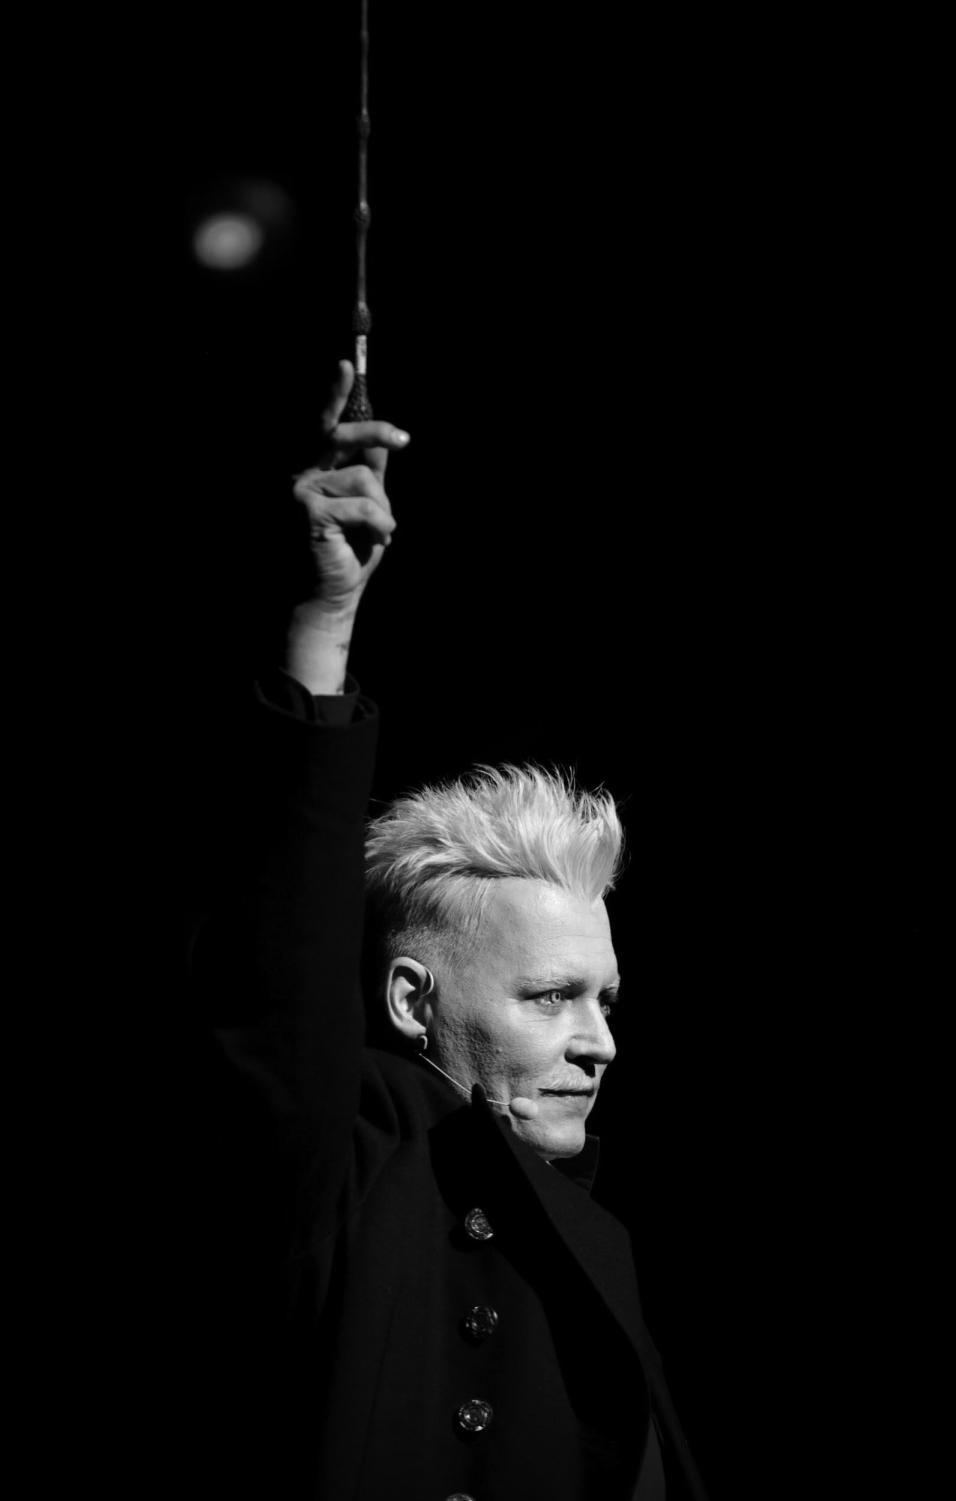 Johnny Depp as the Gellert Grindelwald, in the new Harry Potter prequel, 'Crimes of Grindelwald.' The movie, written by J.K. Rowling and directed by David Yates, is the second out of five Fantastic Beasts movies to be created.